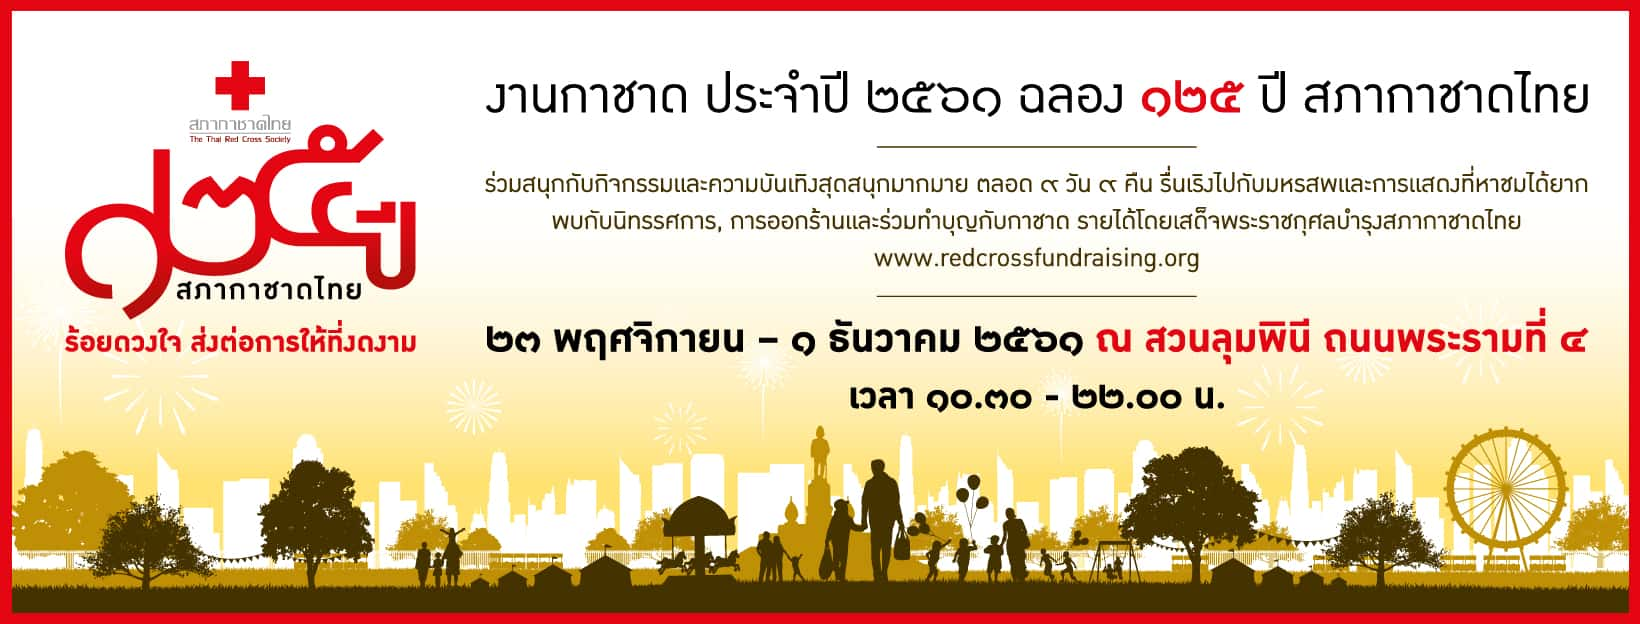 Thai Red Cross Fair 2018 Charity Event at Bangkok's Lumpini Park